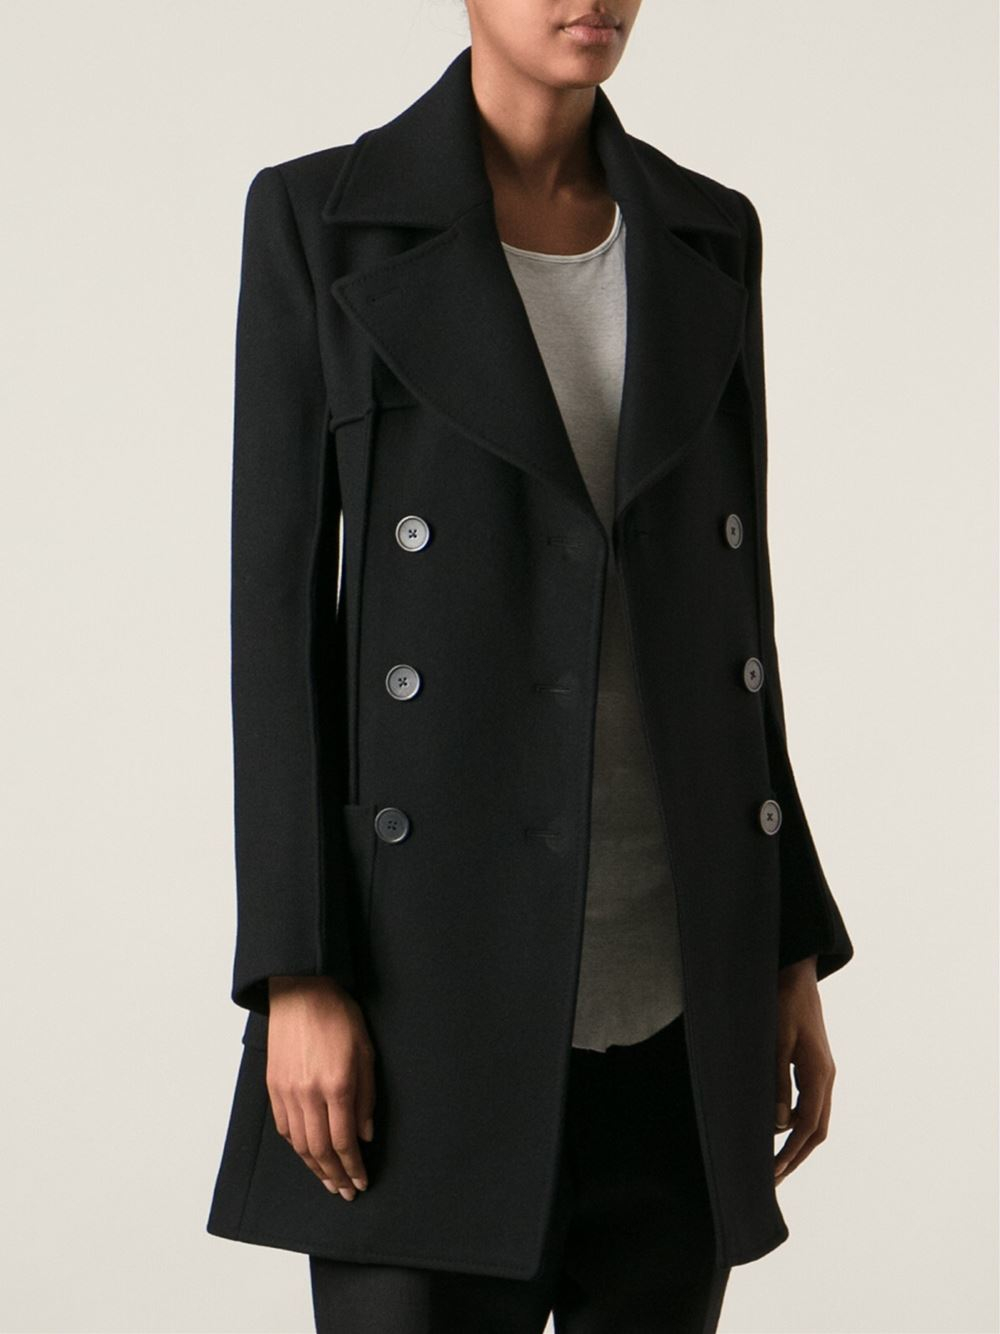 double-breasted coat - Black Ann Demeulemeester Discounts Clearance Best Seller Best Deals Cheap Pre Order C4ptuRA